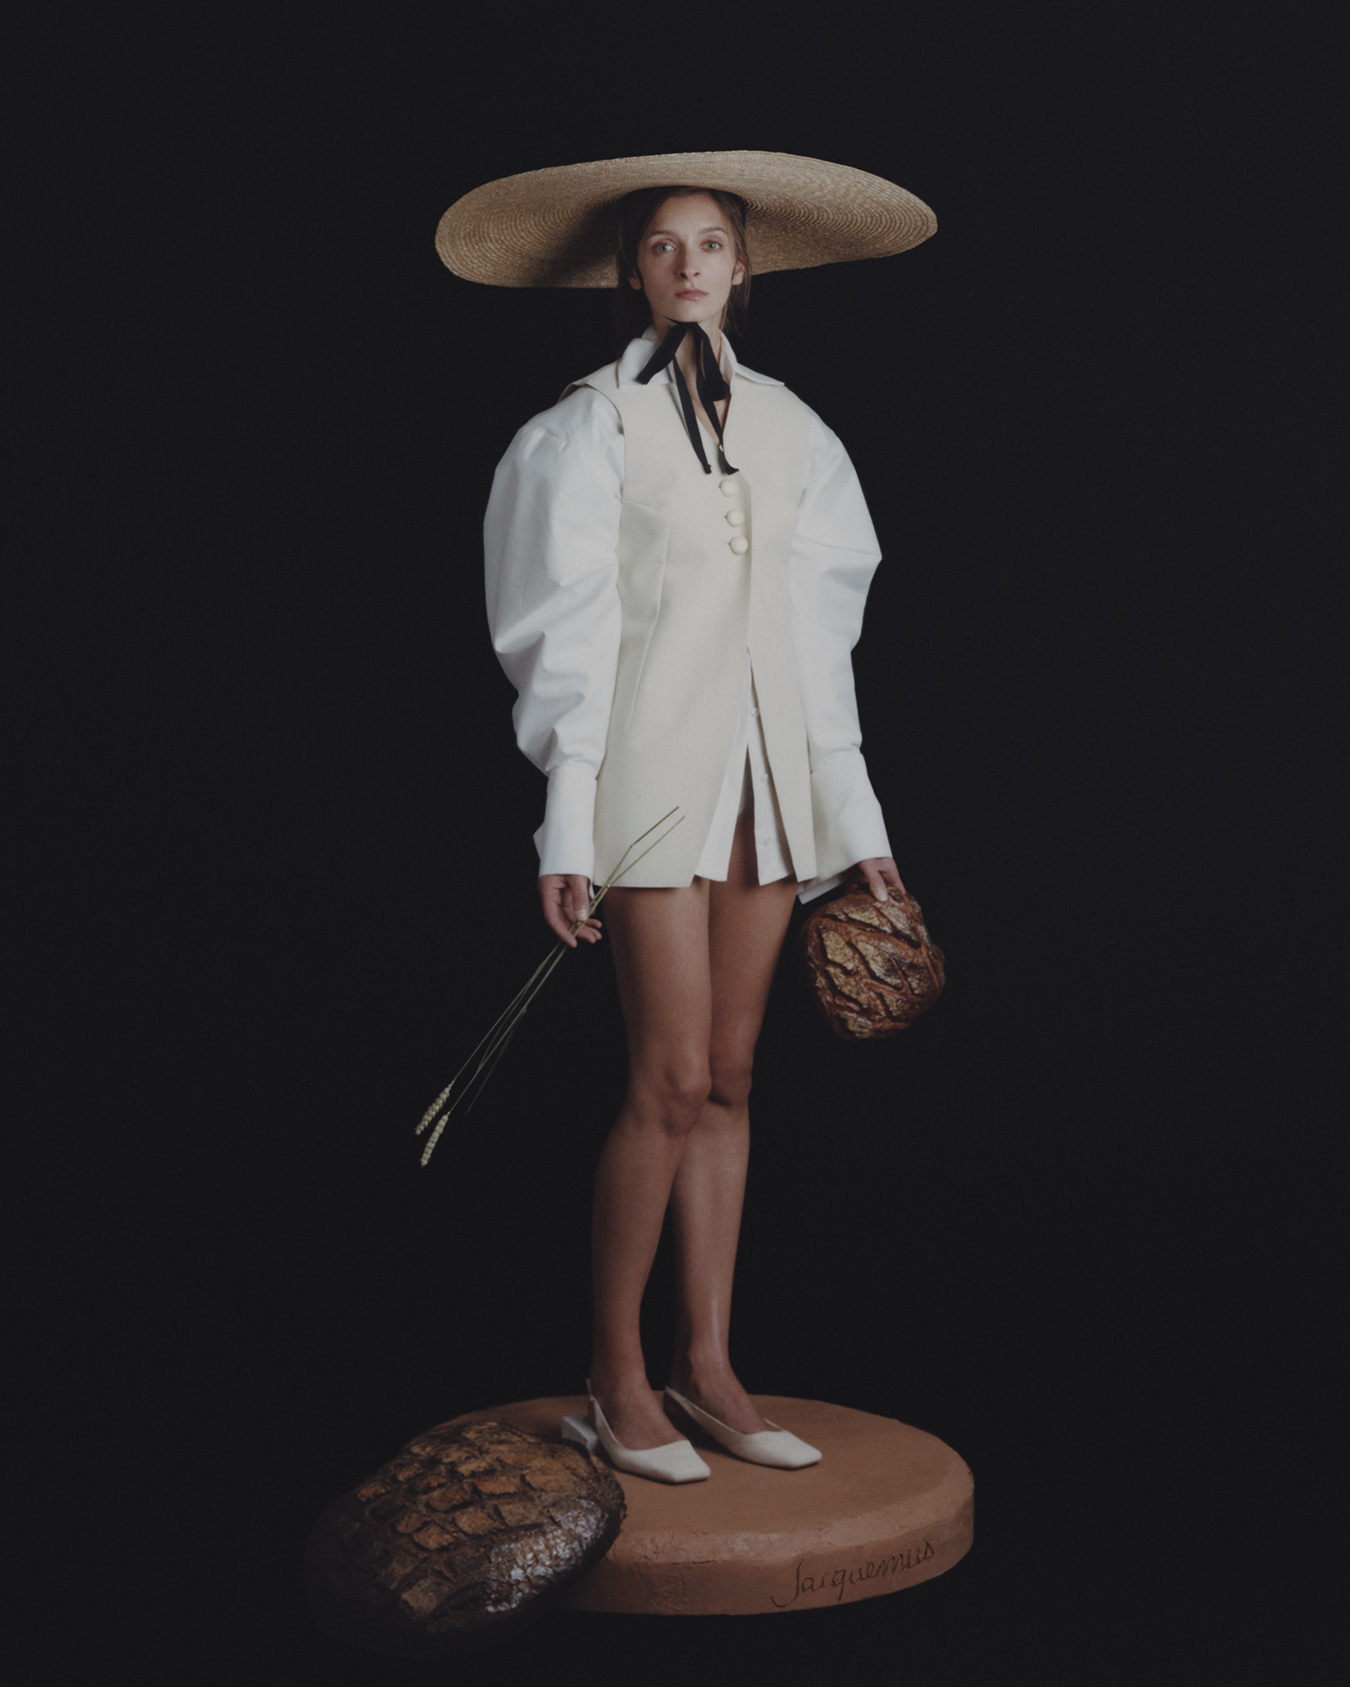 JACQUEMUS SANTONS BY DAVID LURASCHI